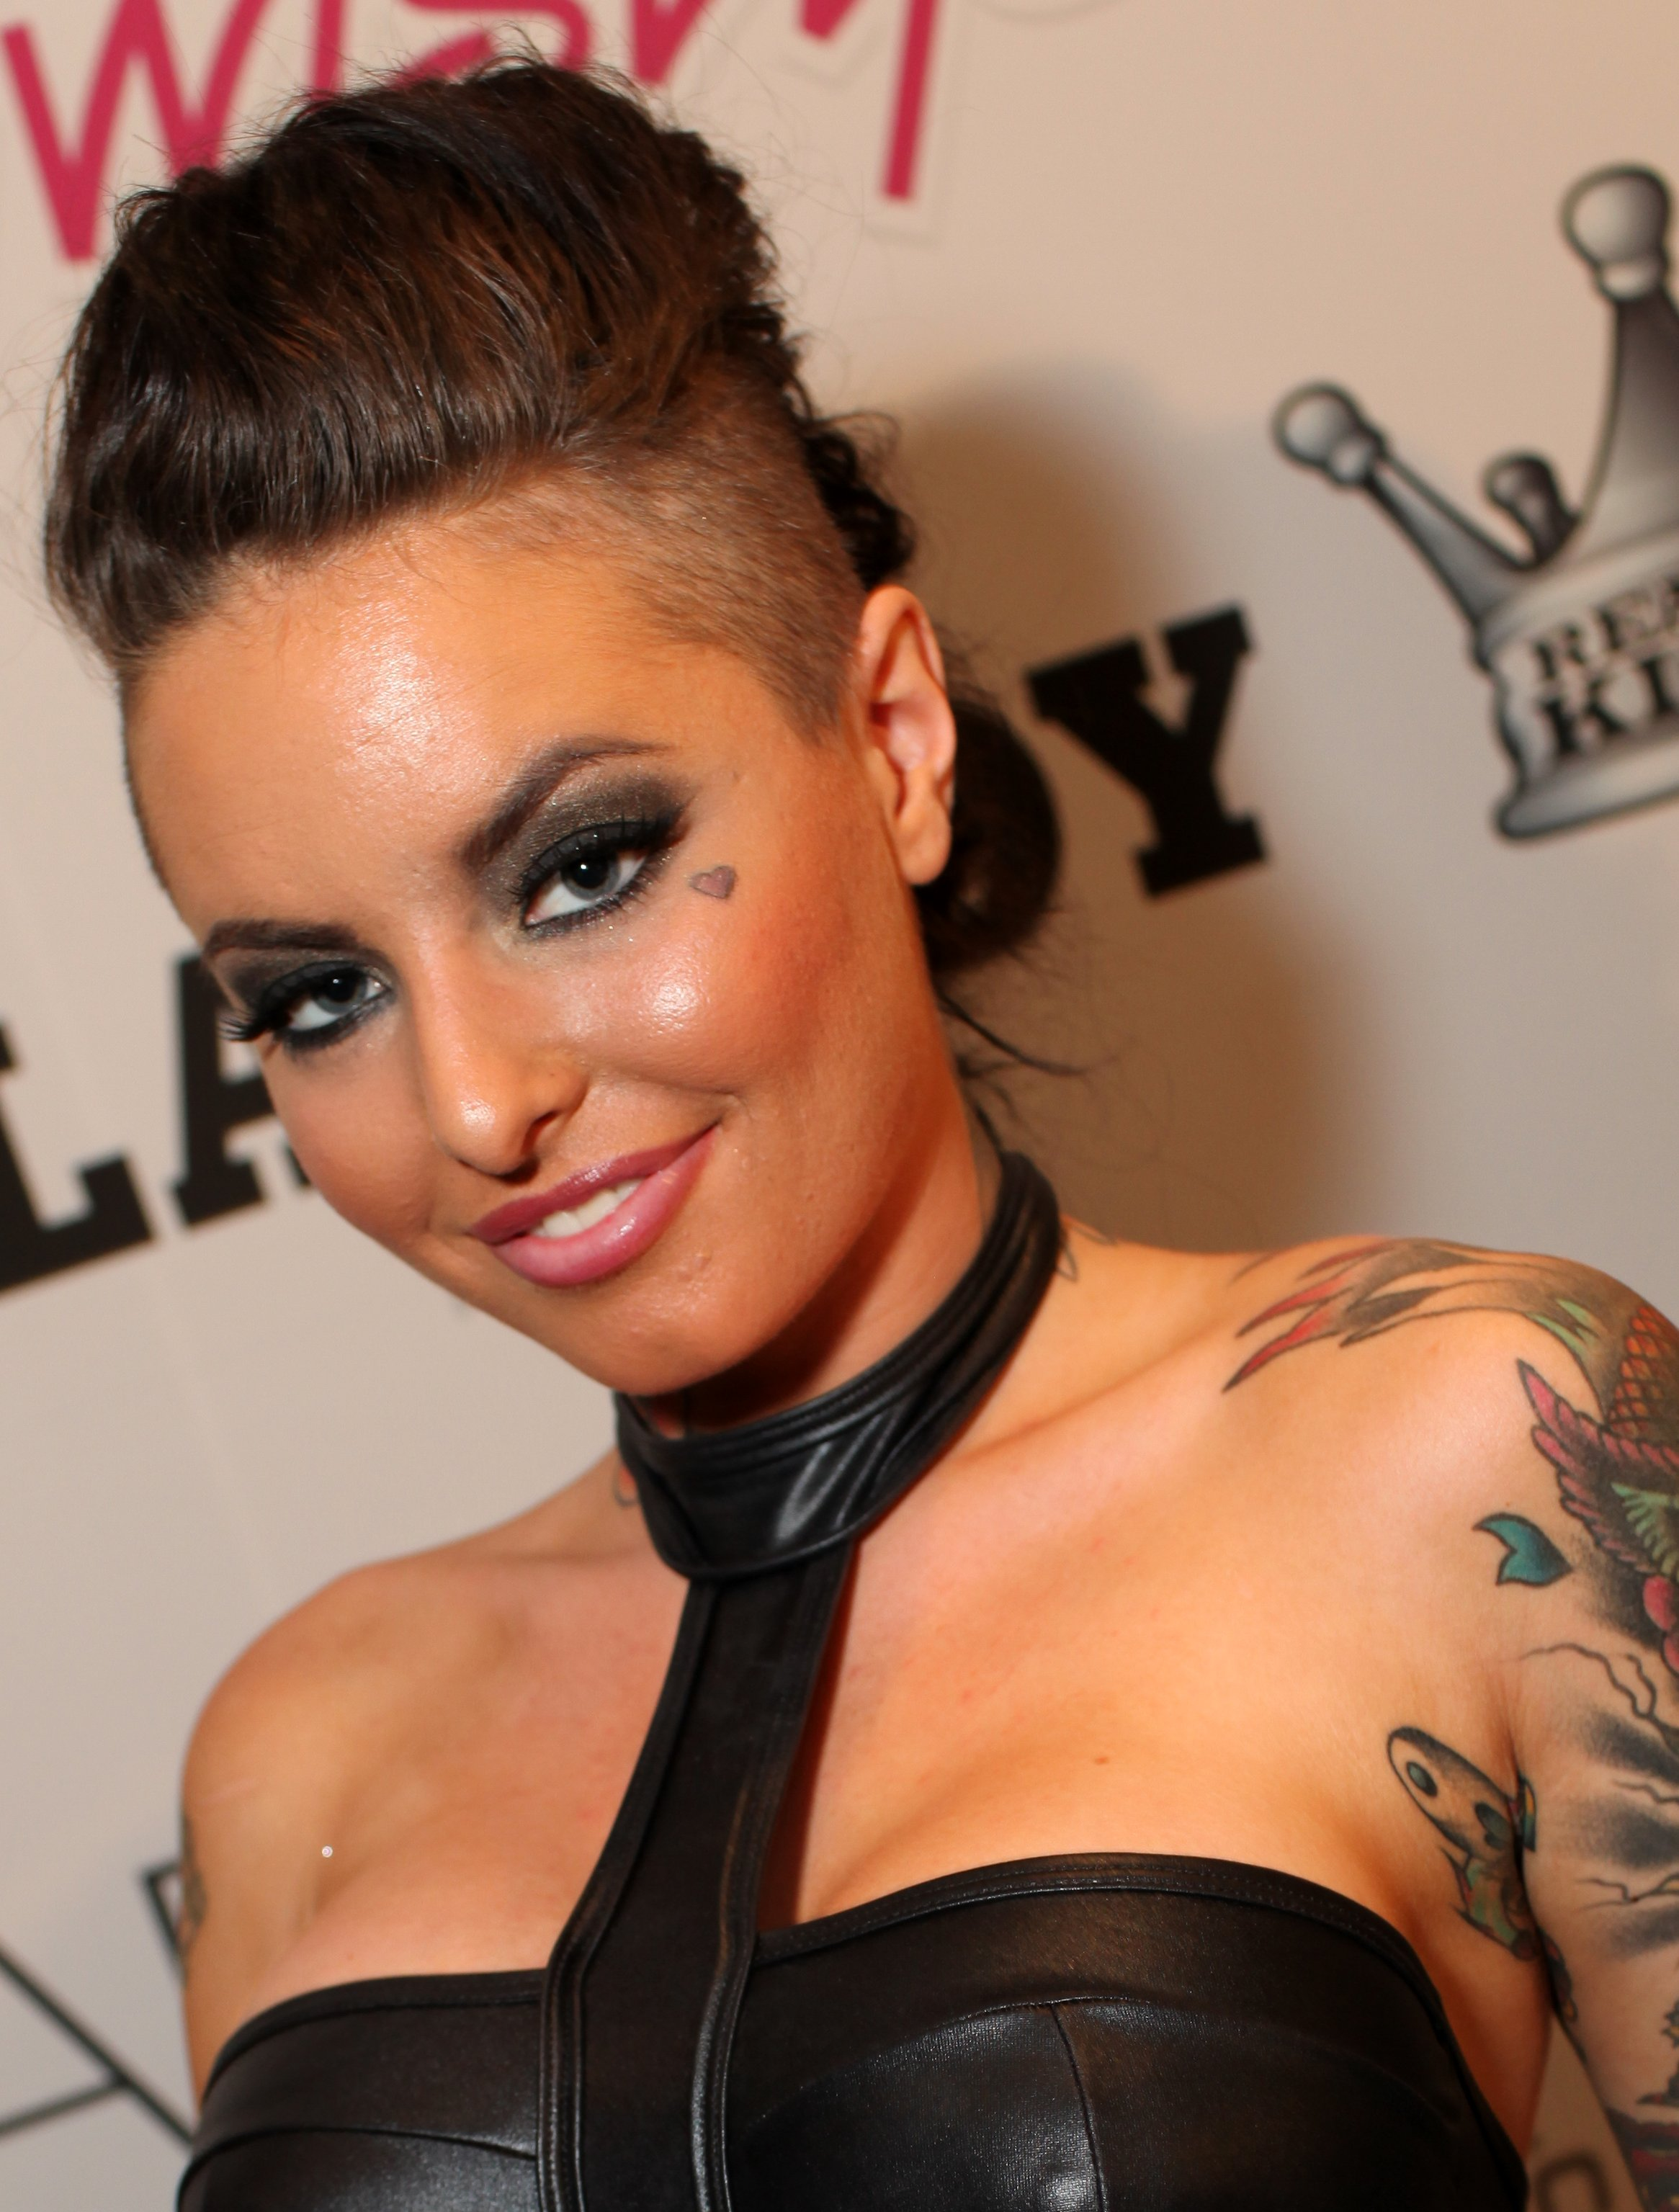 Christy_Mack_AVN_Adult_Entertainment_Expo_2013_4